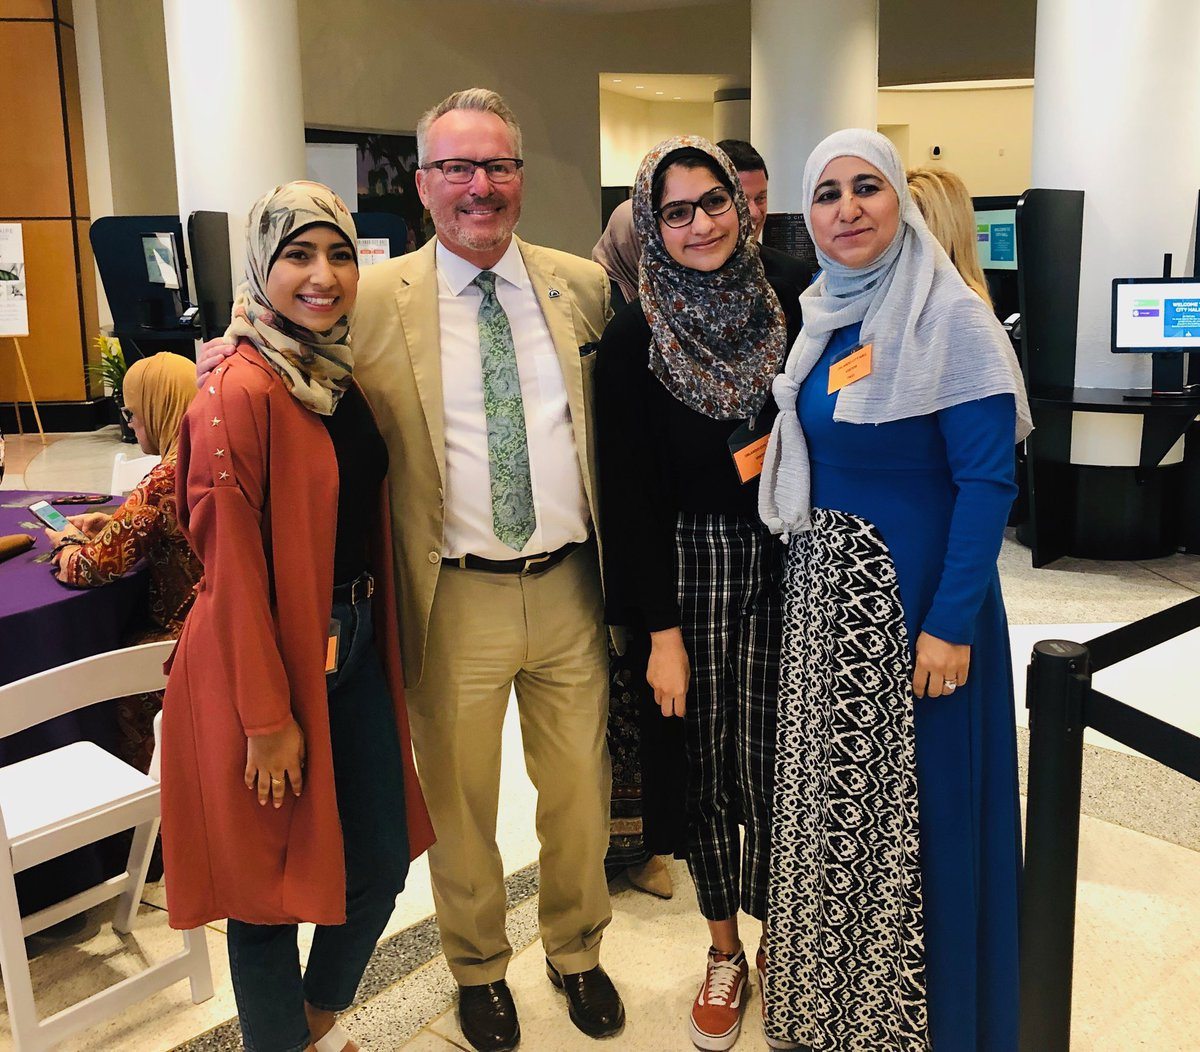 Tonight I was honored to join members of our Muslim community, who are celebrating Ramadan, break bread at an Iftar dinner. It was a beautiful event that showcased our city's commitment to inclusion. – at Orlando City Hall